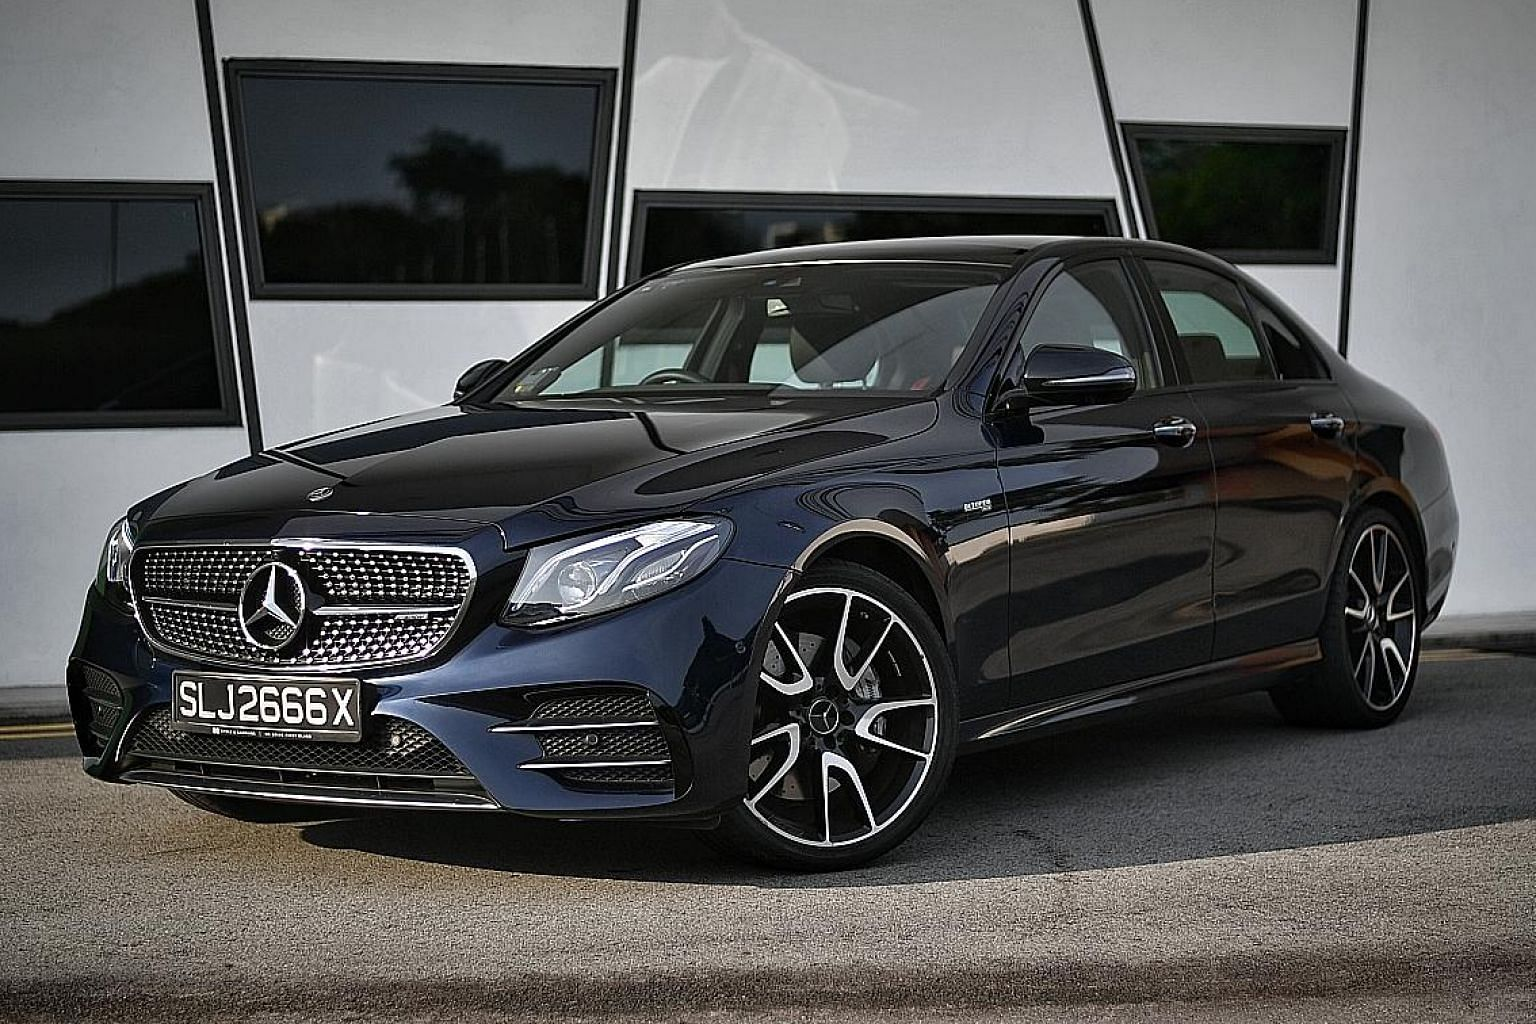 The latest Mercedes-AMG E43 Saloon is equipped with a 3-litre V6 engine with twin turbochargers and churns out 401hp and 520Nm of torque.